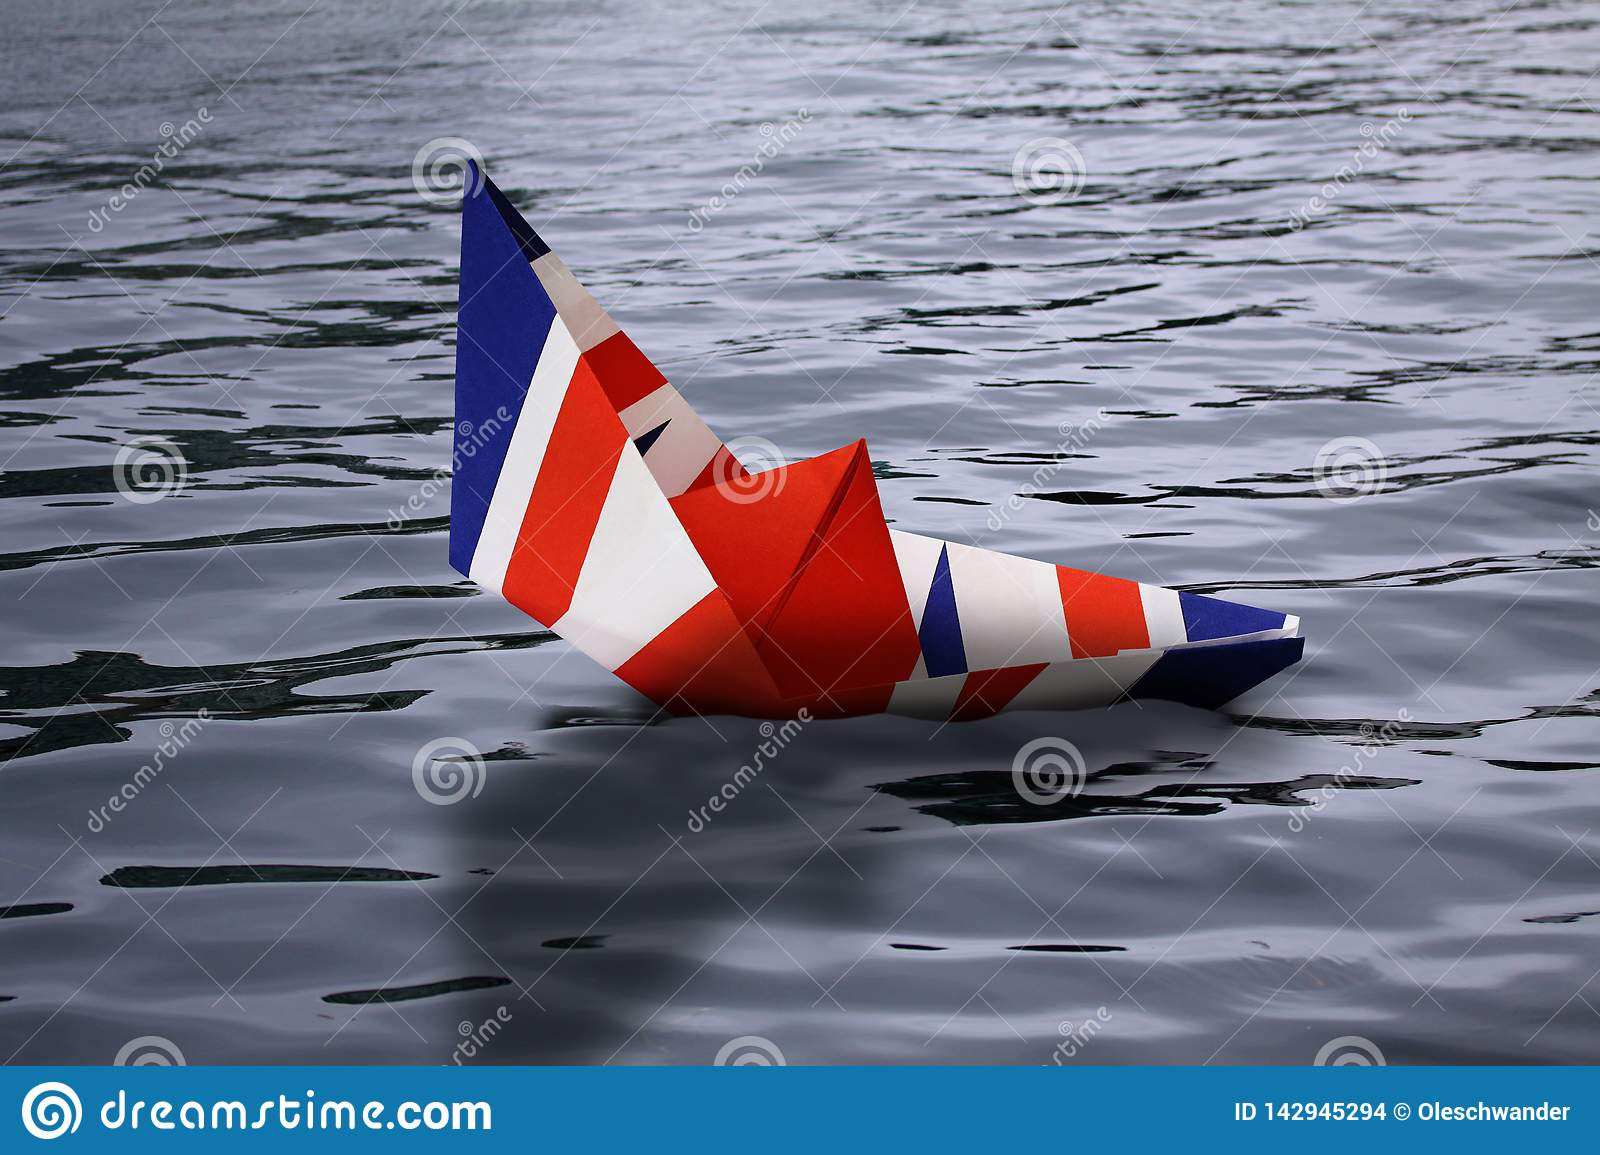 Paper boat made as the british flag sinking In water - concept showing England leaving European Union and the economy going down a